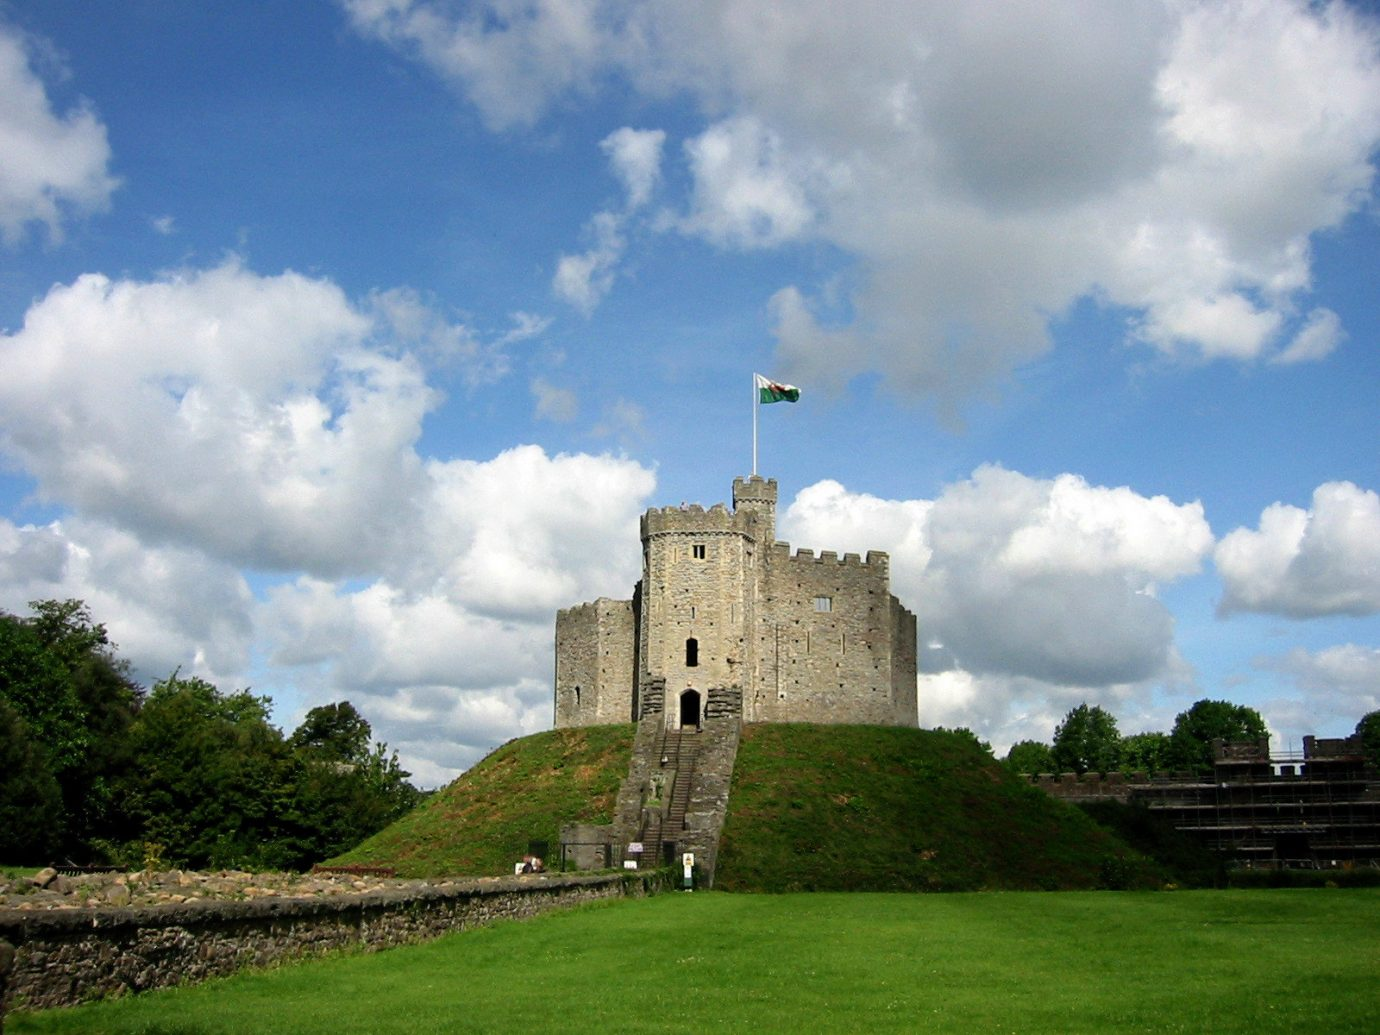 City London sky cloud castle highland fortification grass château historic site national trust for places of historic interest or natural beauty stately home archaeological site tree field grassland building meadow meteorological phenomenon estate landscape citadelle ancient history